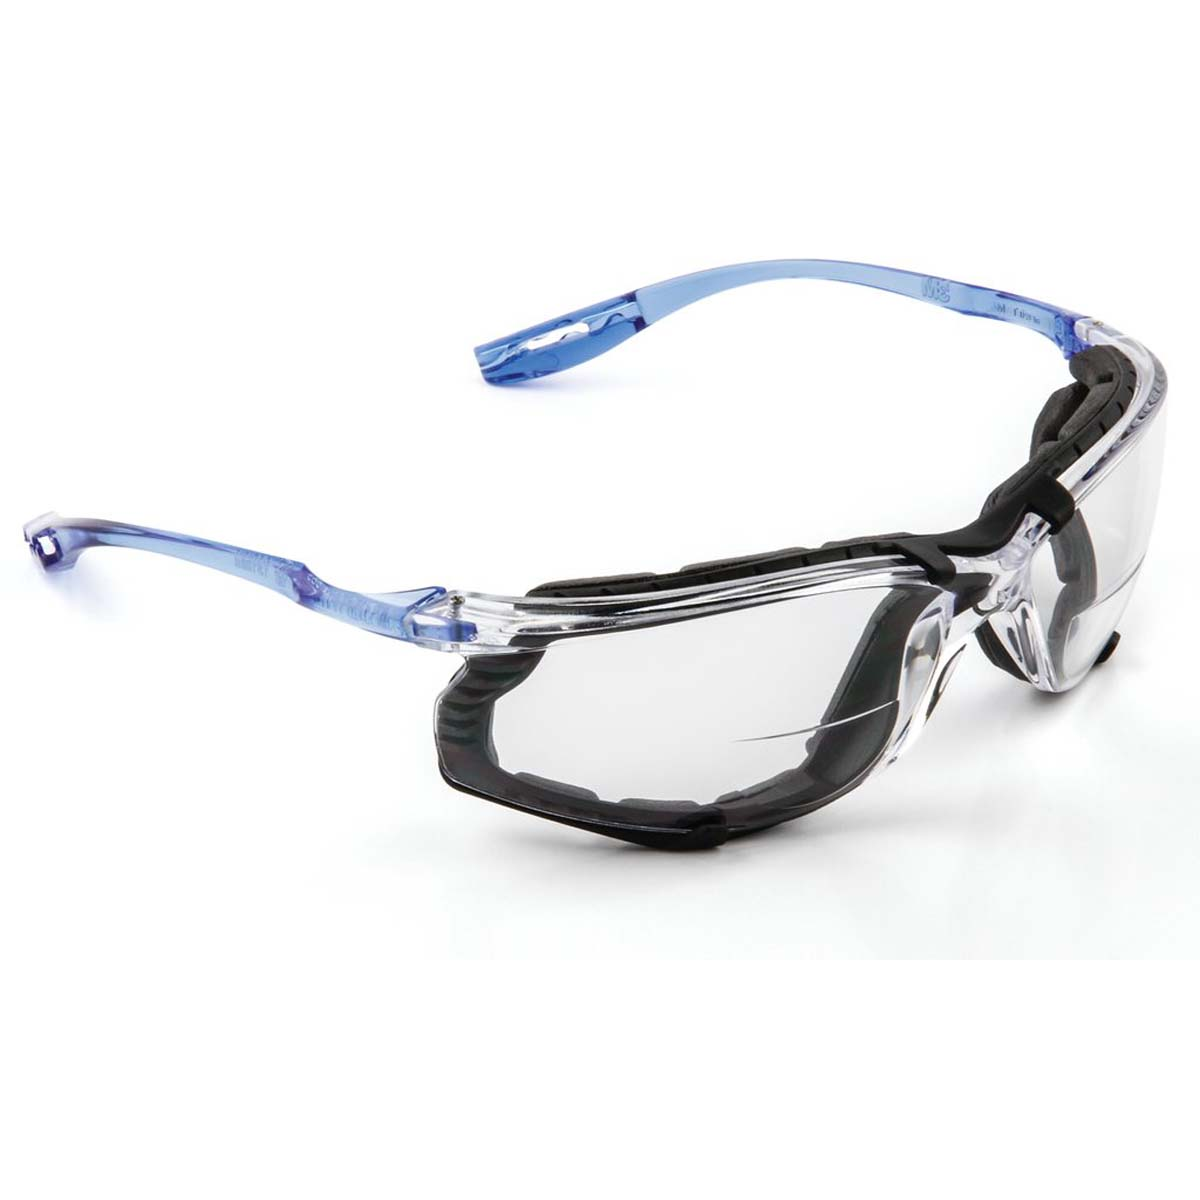 "3Mâ""¢ Virtuaâ""¢ CCS Protective Eyewear with Foam Gasket, VC215AF Clear +2.0D Anti-Fog Lens,"